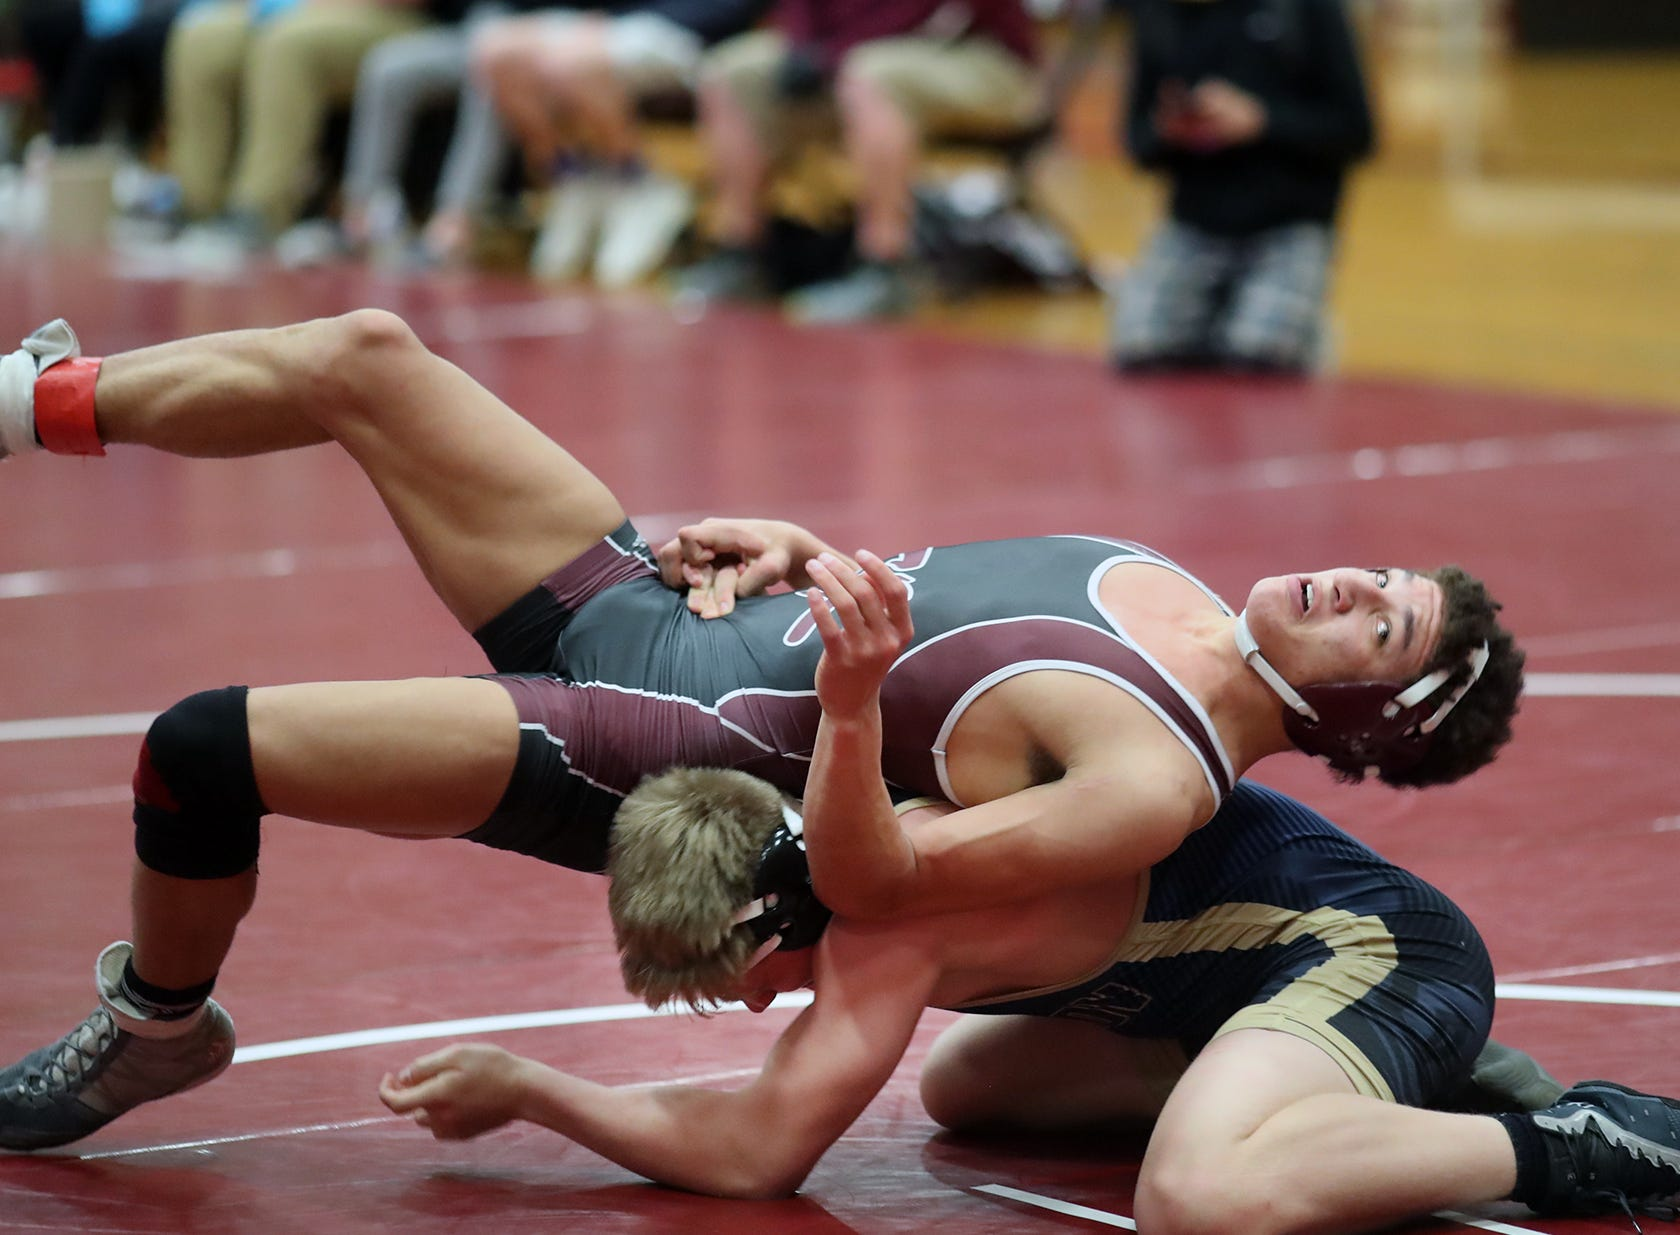 South Kitsap hosted its wrestling invitational Saturday, Jan. 1, 2019. They won the team title, and had nine wrestlers in the finals. Deyondre Davis, of South Kitsap does a spin move escape from Shaine Arzberger of Rogers in a 160 pound finals match.